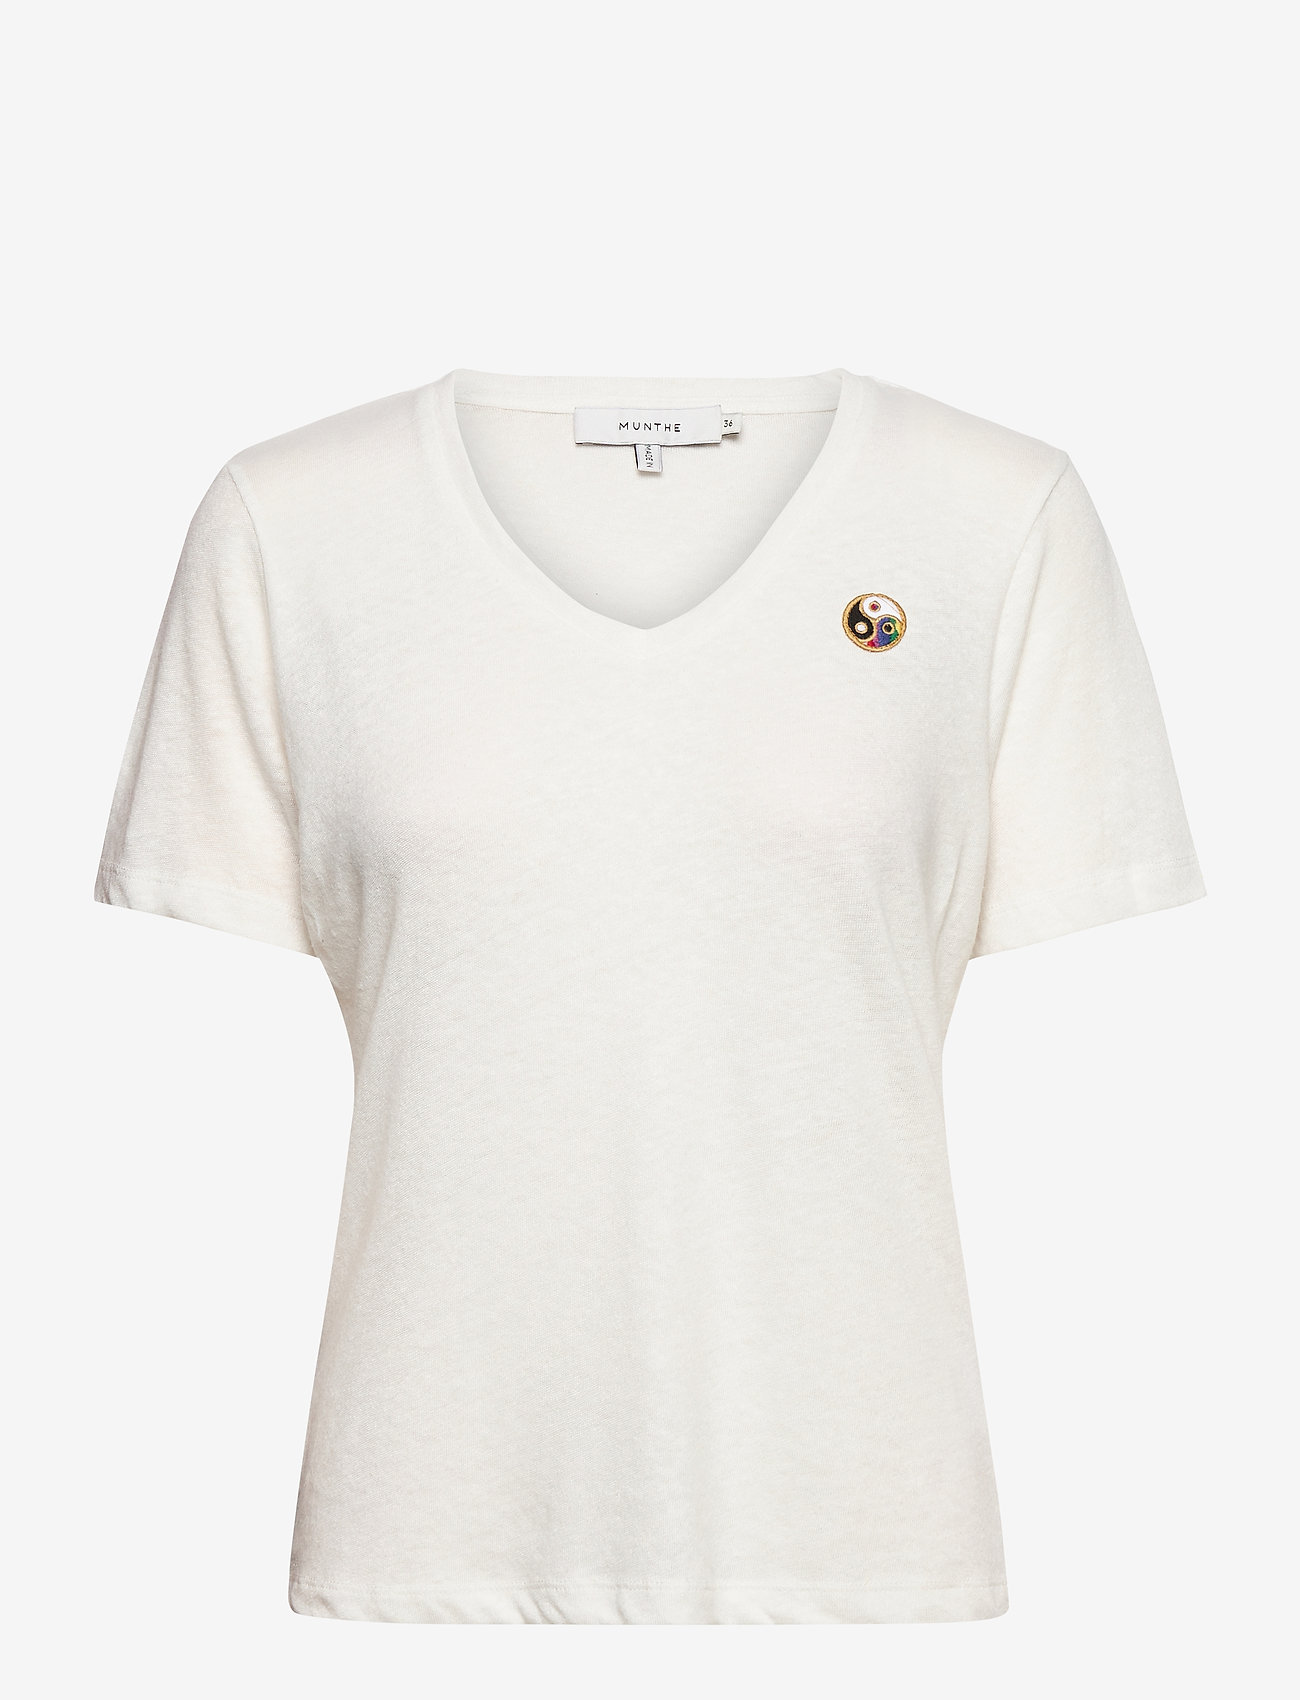 Munthe - LOWELL - t-shirts - white - 1